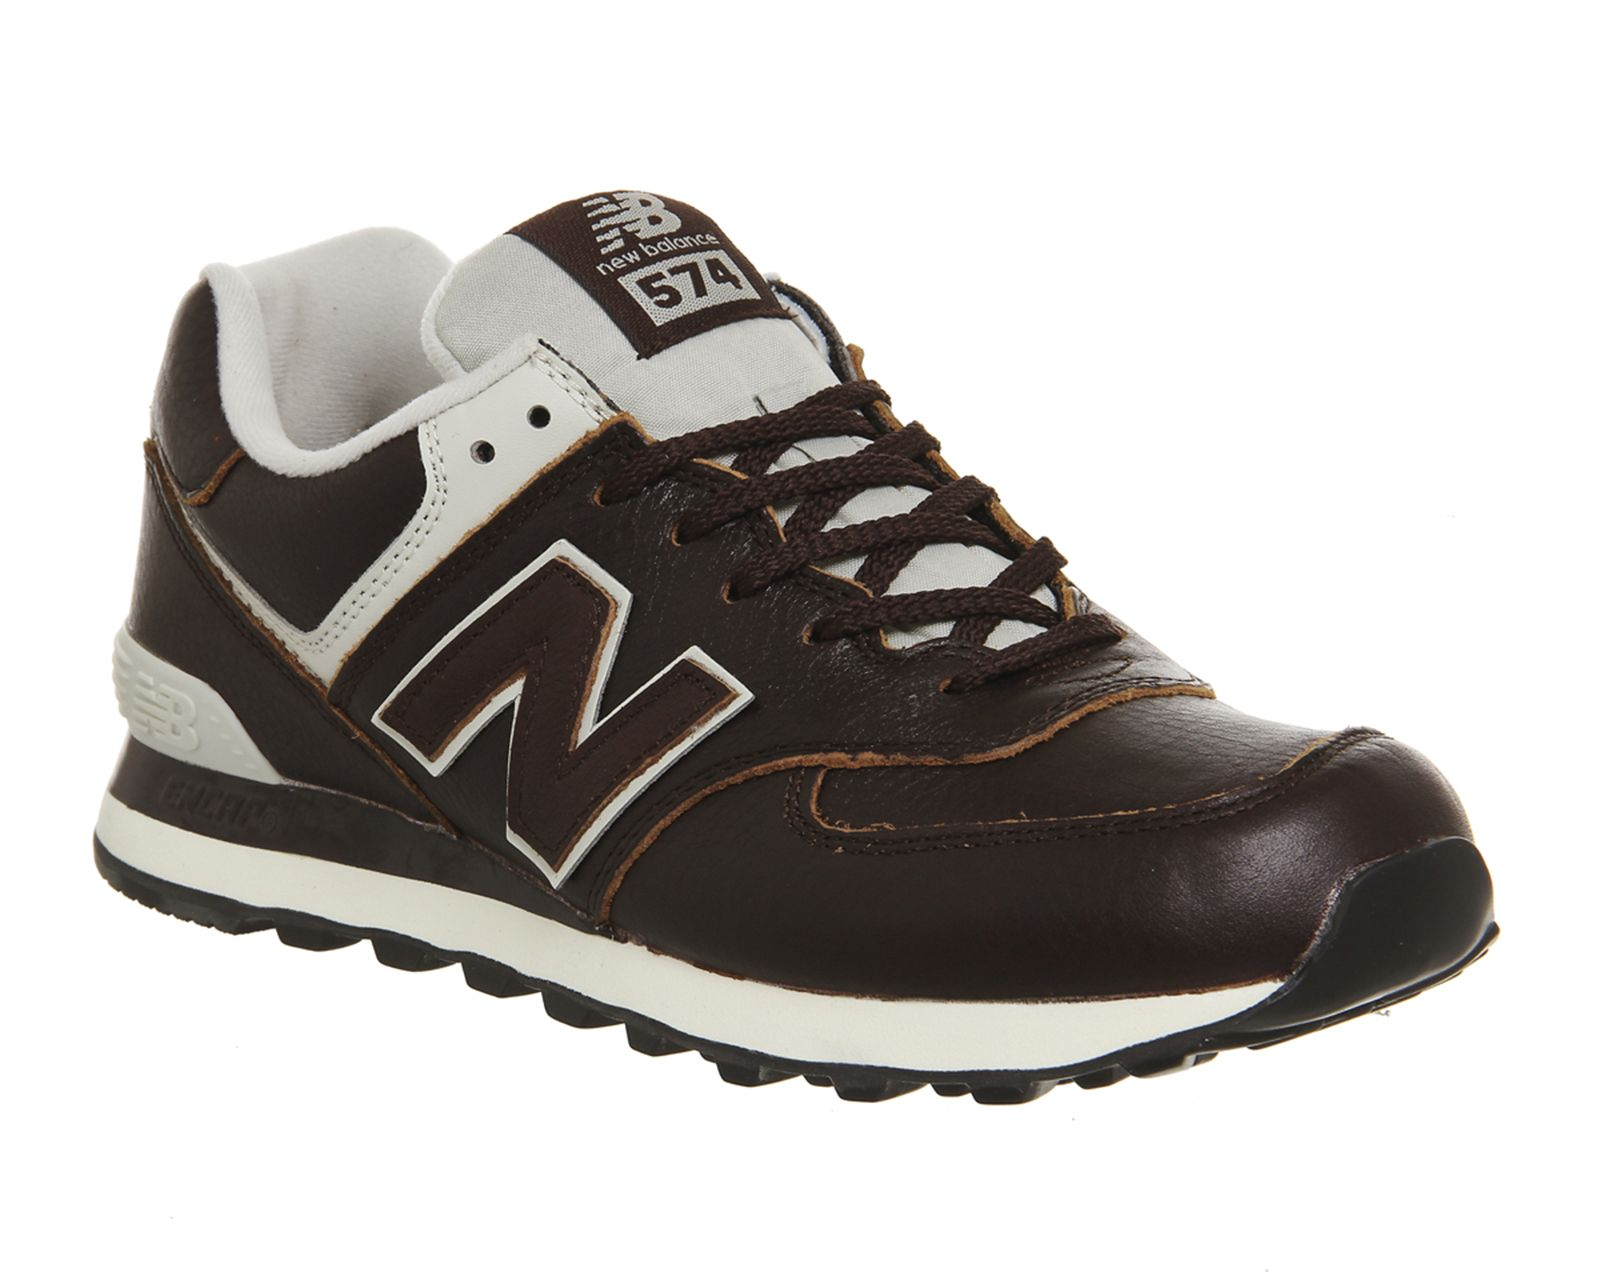 online retailer 017ee 5dff4 Buy Barrel Brown Powder New Balance 574 from OFFICE.co.uk ...